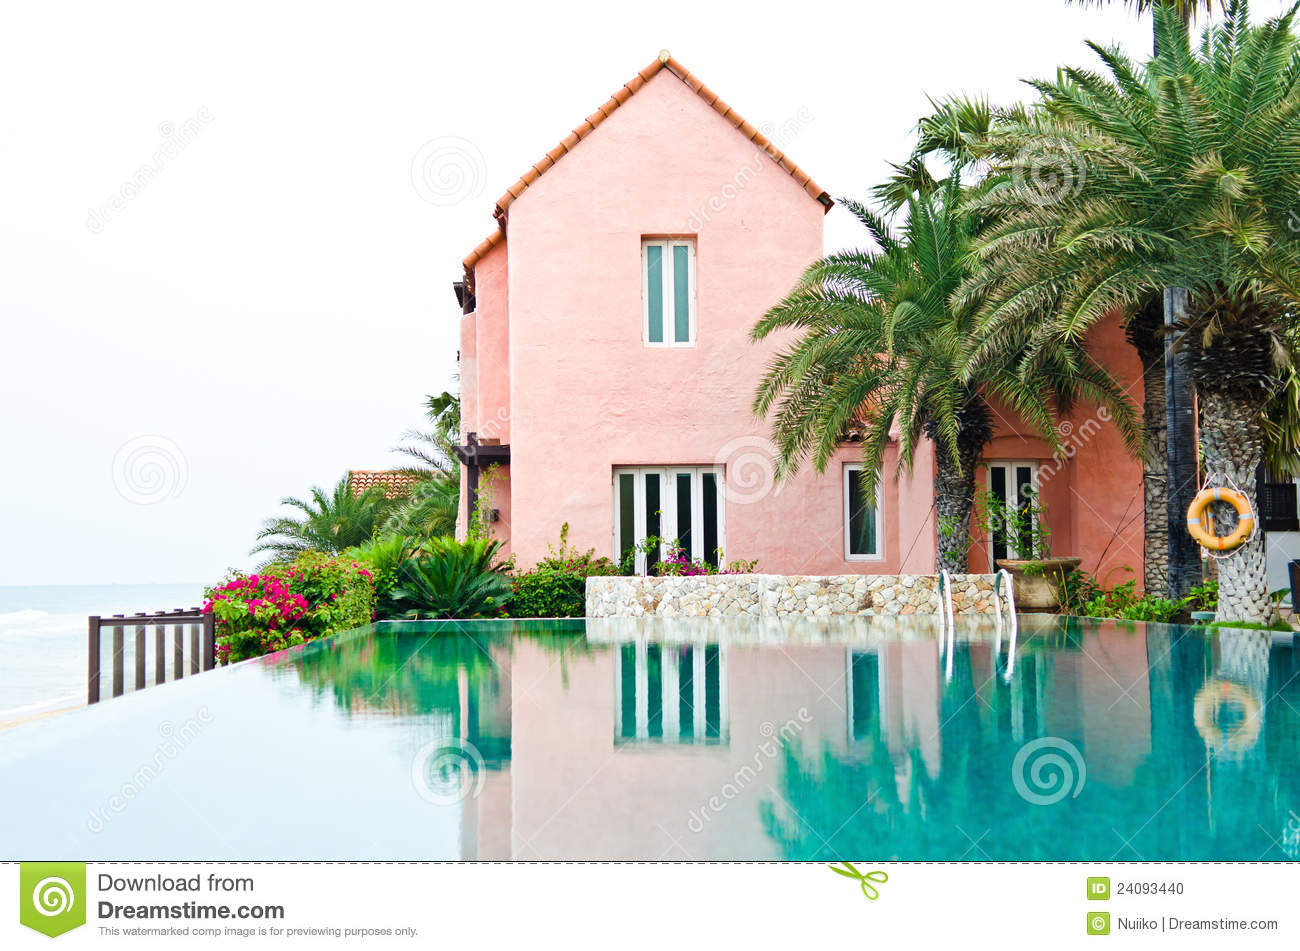 Dream House With Pool dream house with swimming pool stock photo - image: 24093440